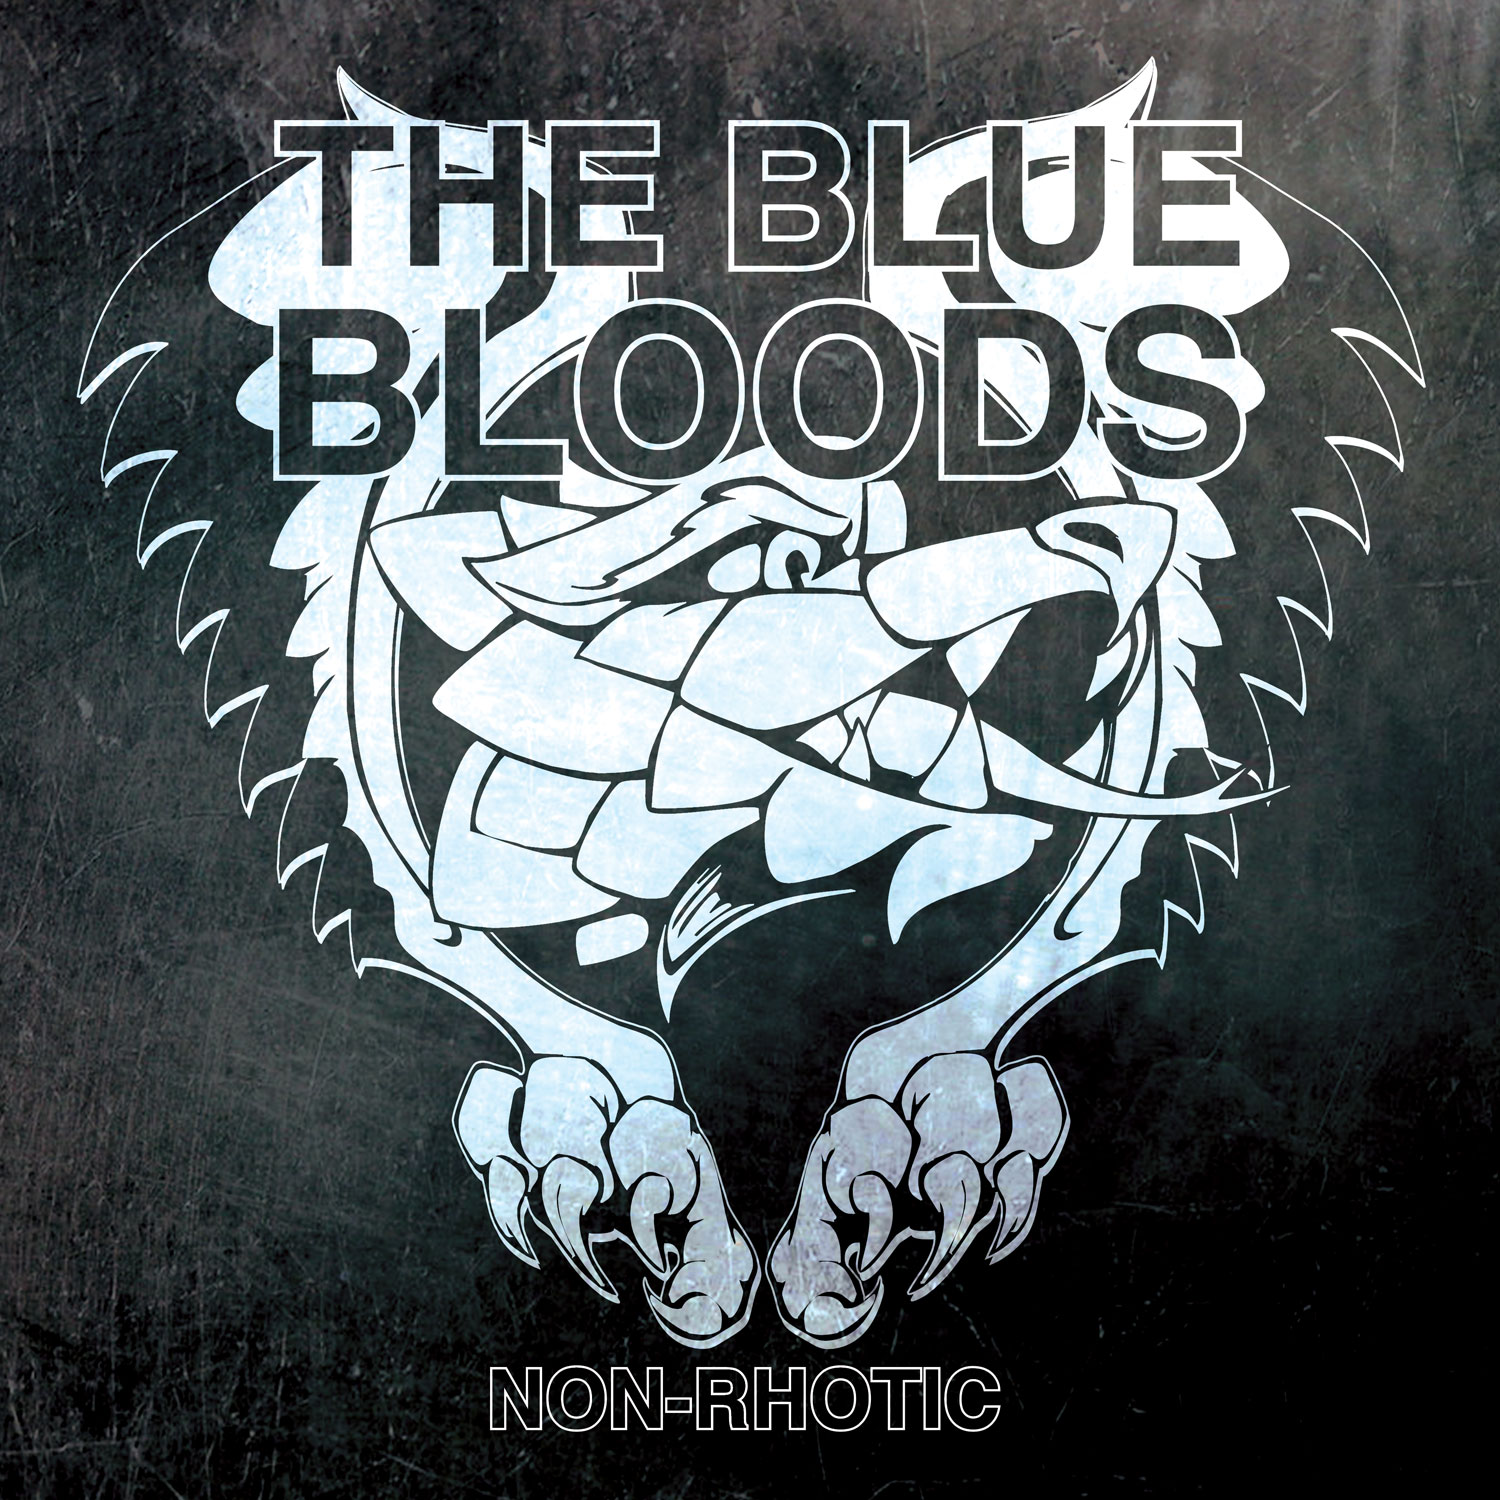 The Blue Bloods - Non-Rhotic